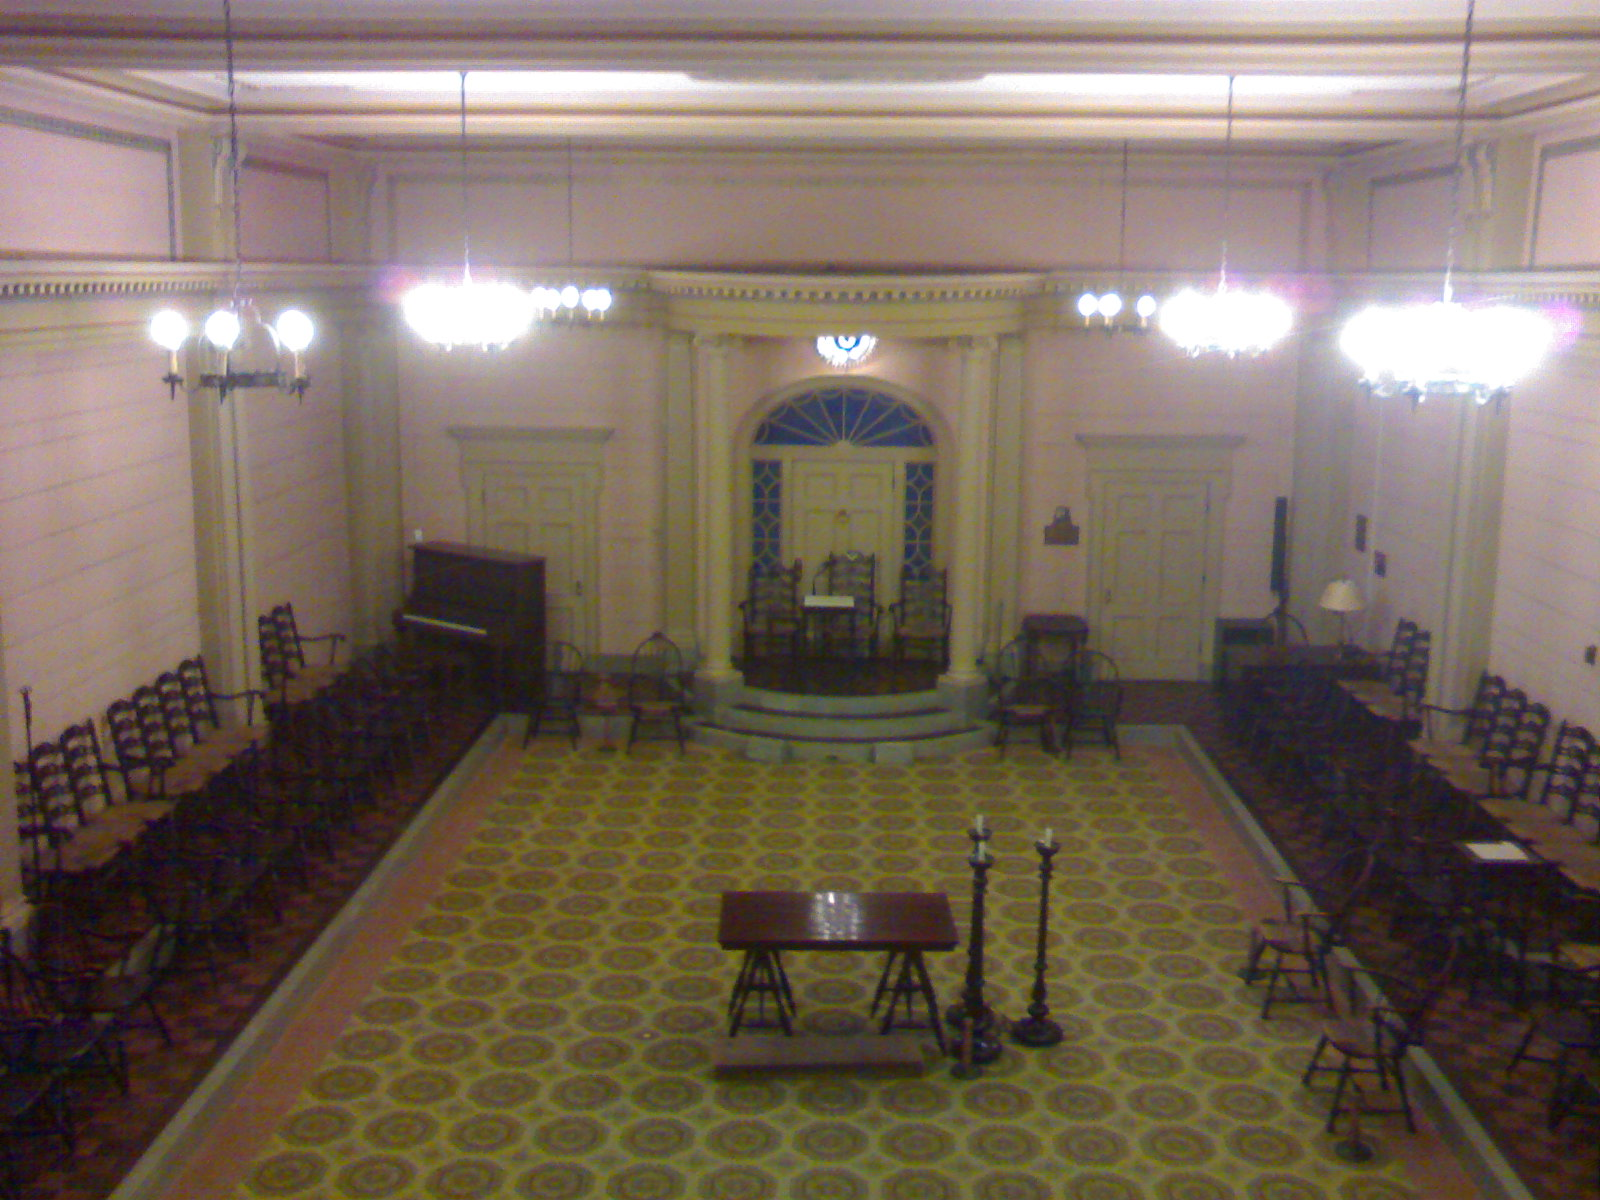 Lodge Masonic Temple http://commons.wikimedia.org/wiki/File:Masonic_lodge_room,_Salt_Lake_Masonic_Temple.JPG